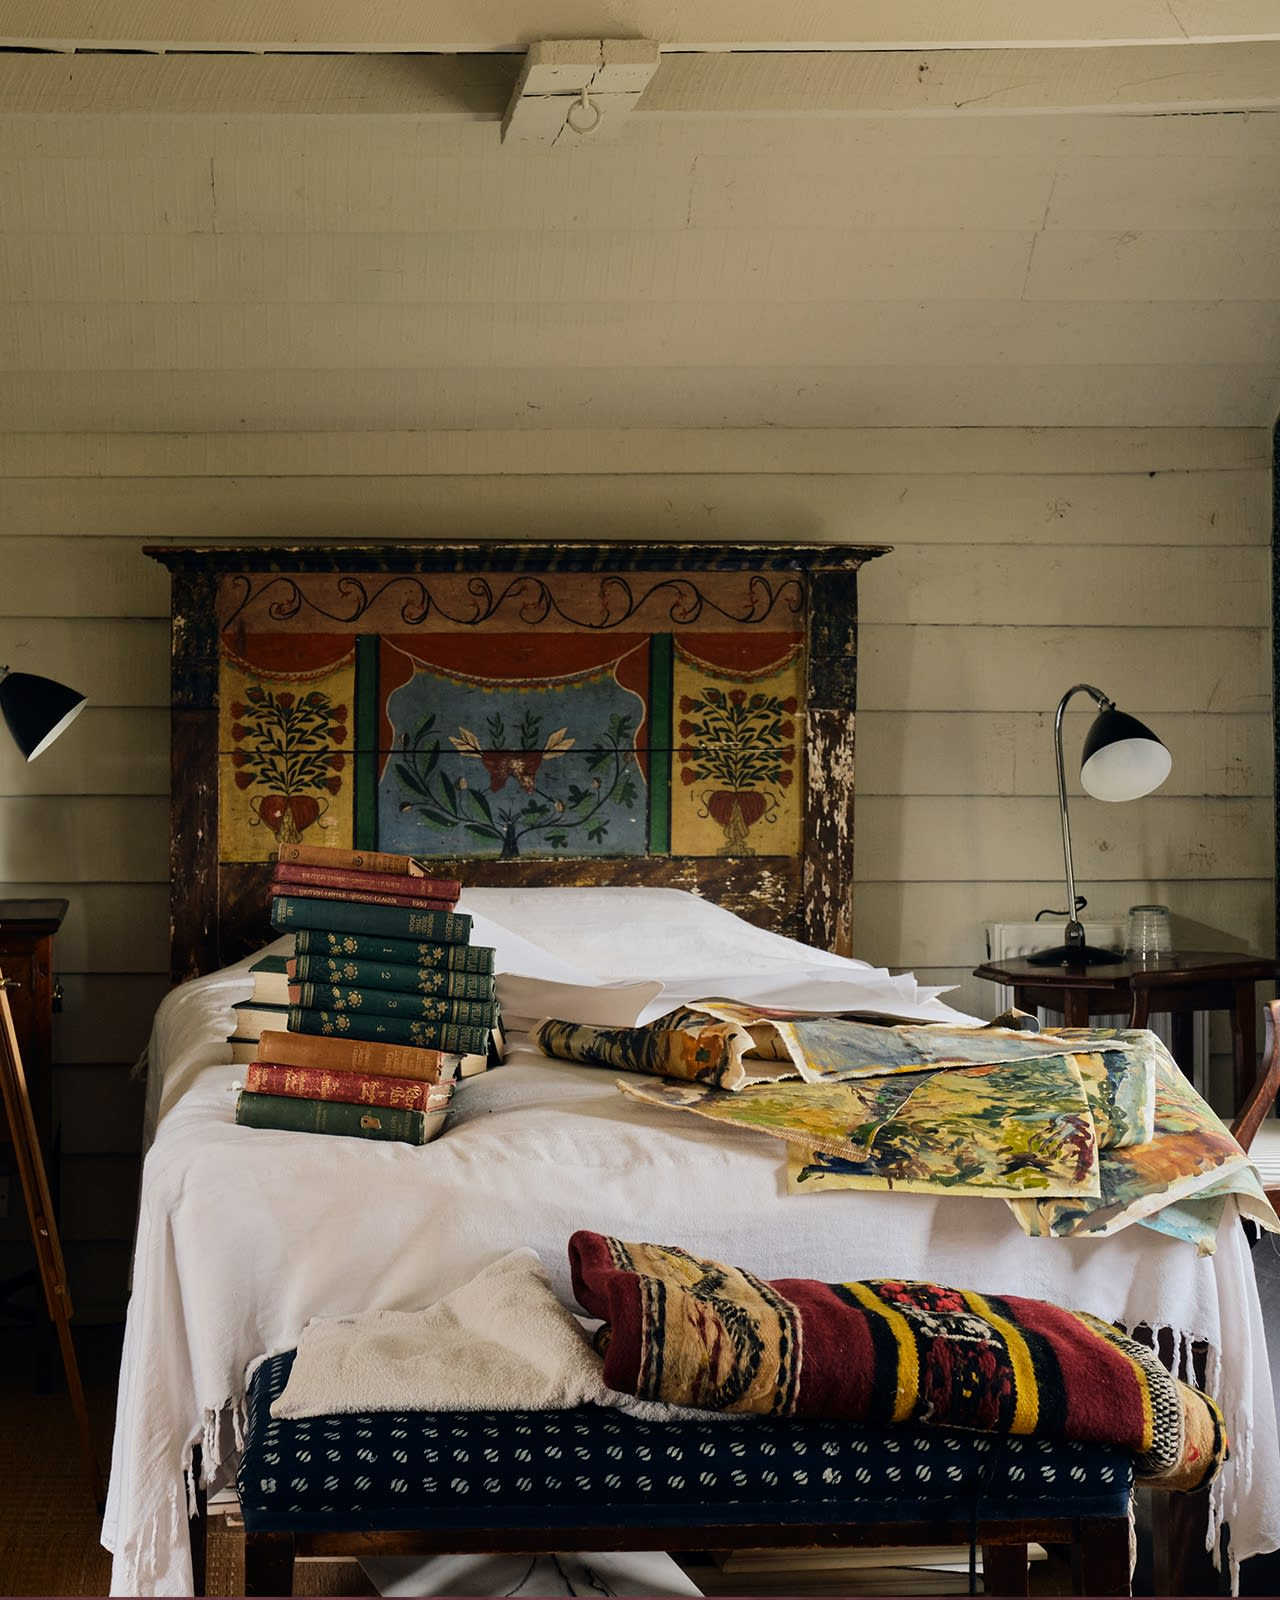 Past works pile up in the guest bedroom at her Wiltshire home.